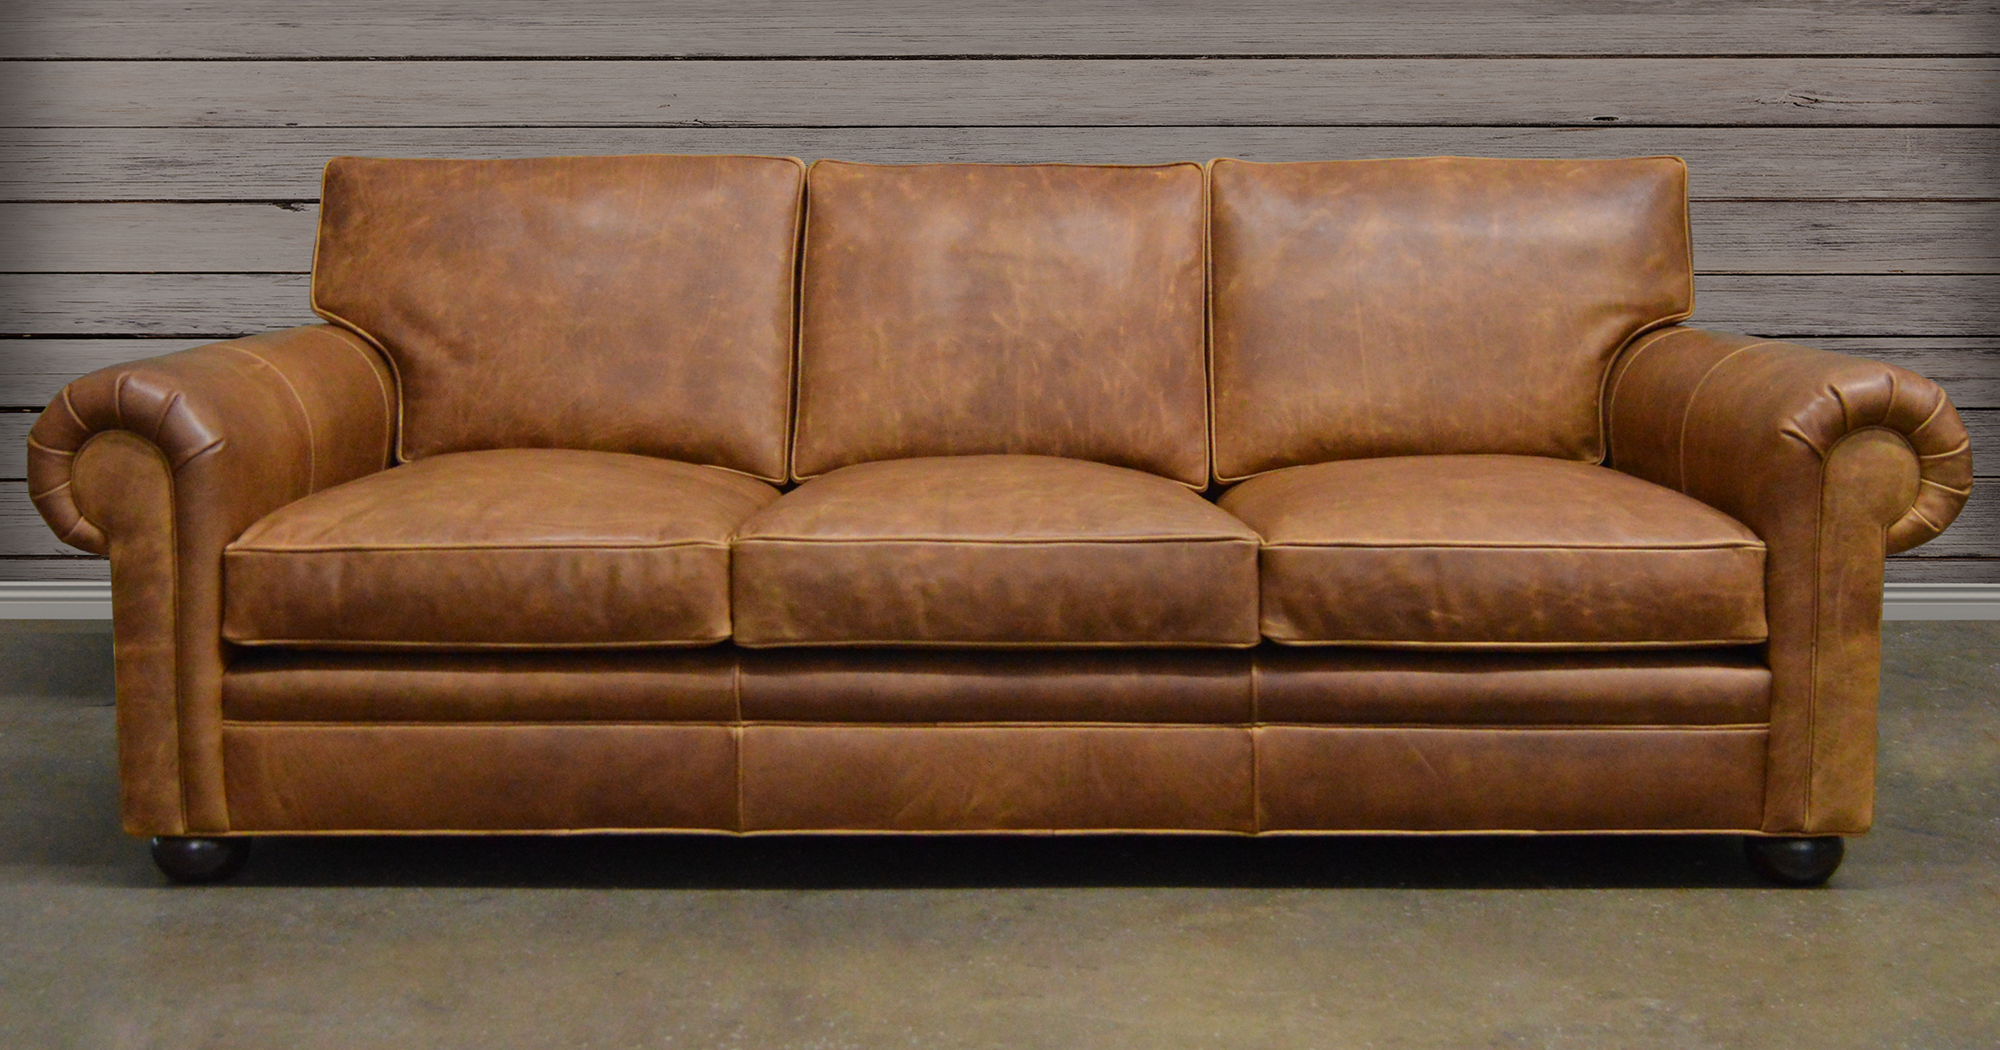 american made leather furniture leather sofas leather chairs rh leathergroups com american made leather sofa recliners american made leather sofas cleveland ohio